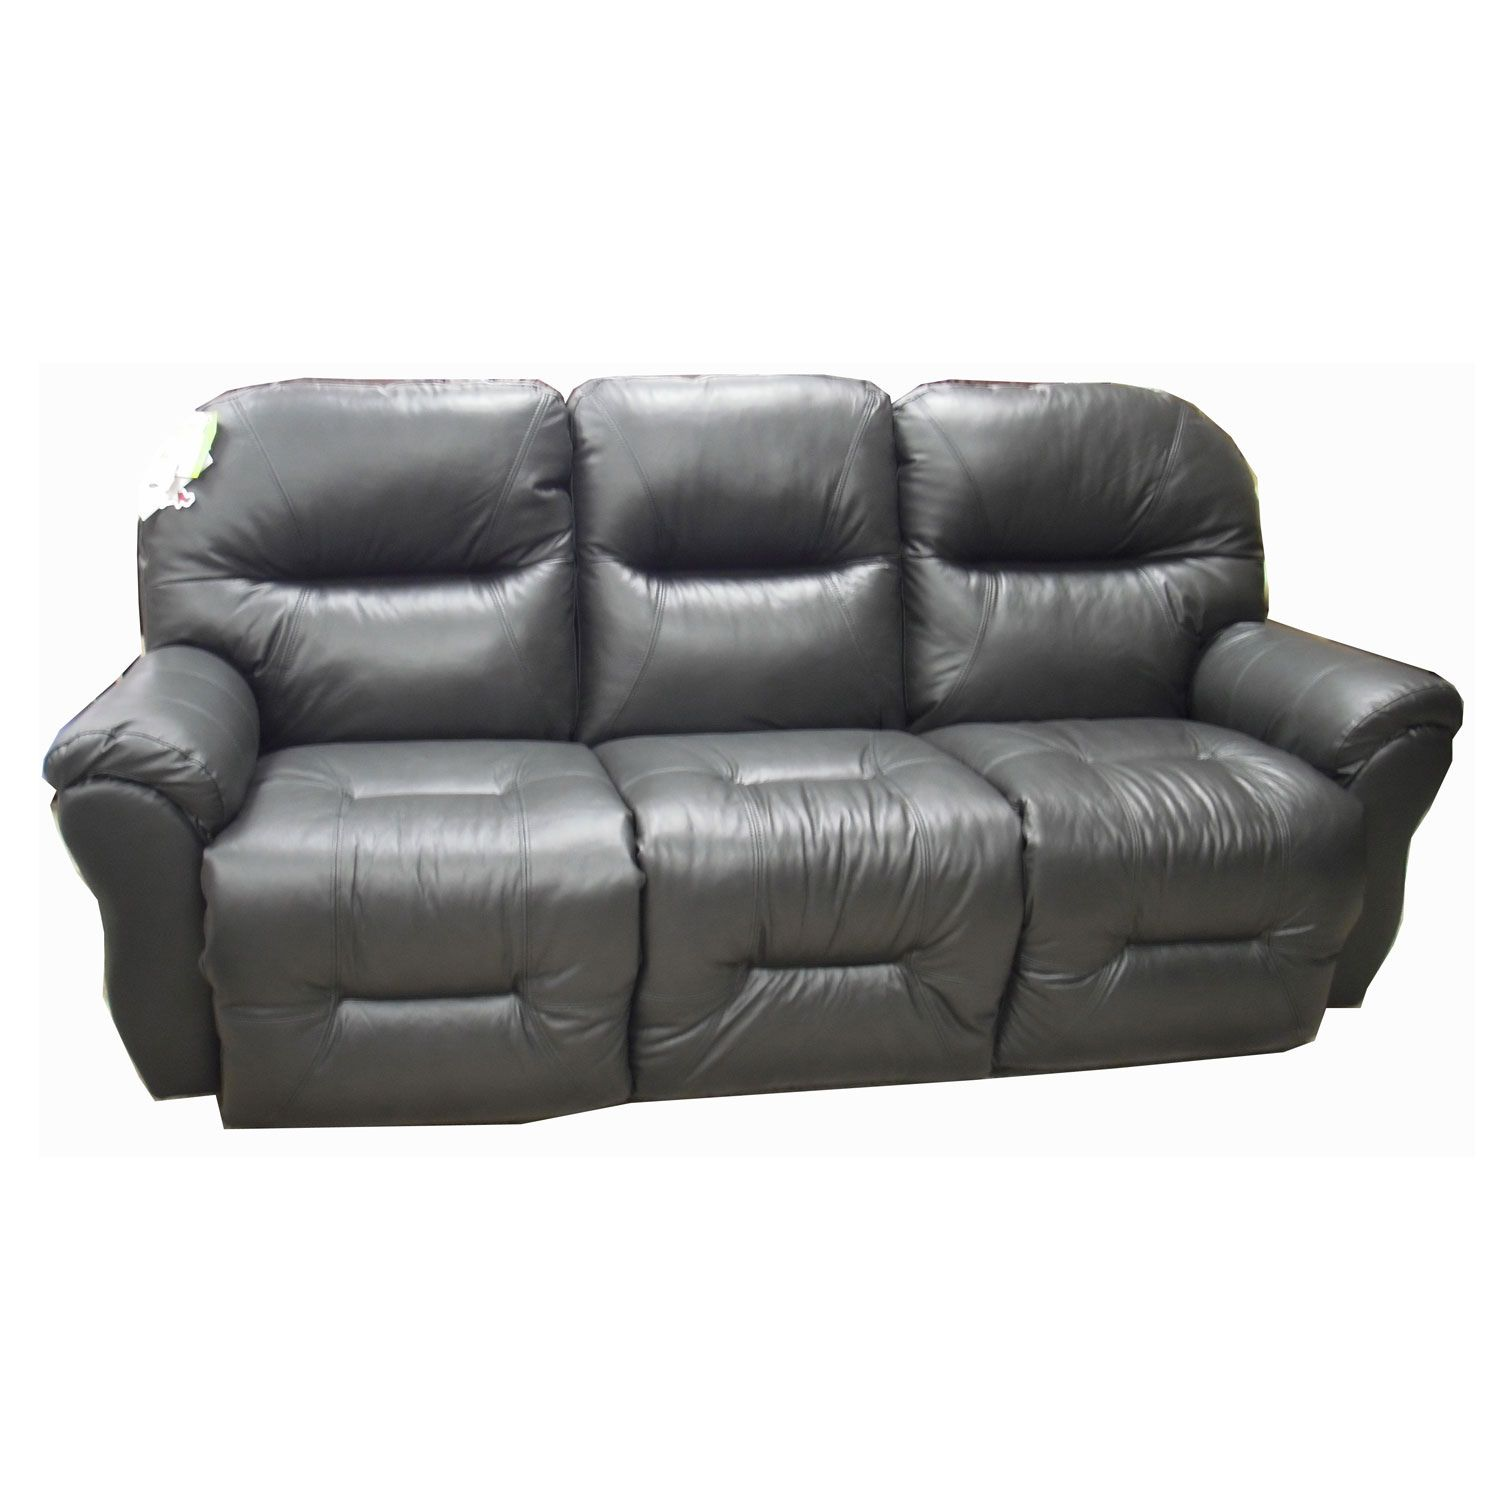 top leather furniture manufacturers. 50+ Best Leather Chair Manufacturers - Paint For Furniture Check More At Http: Top U